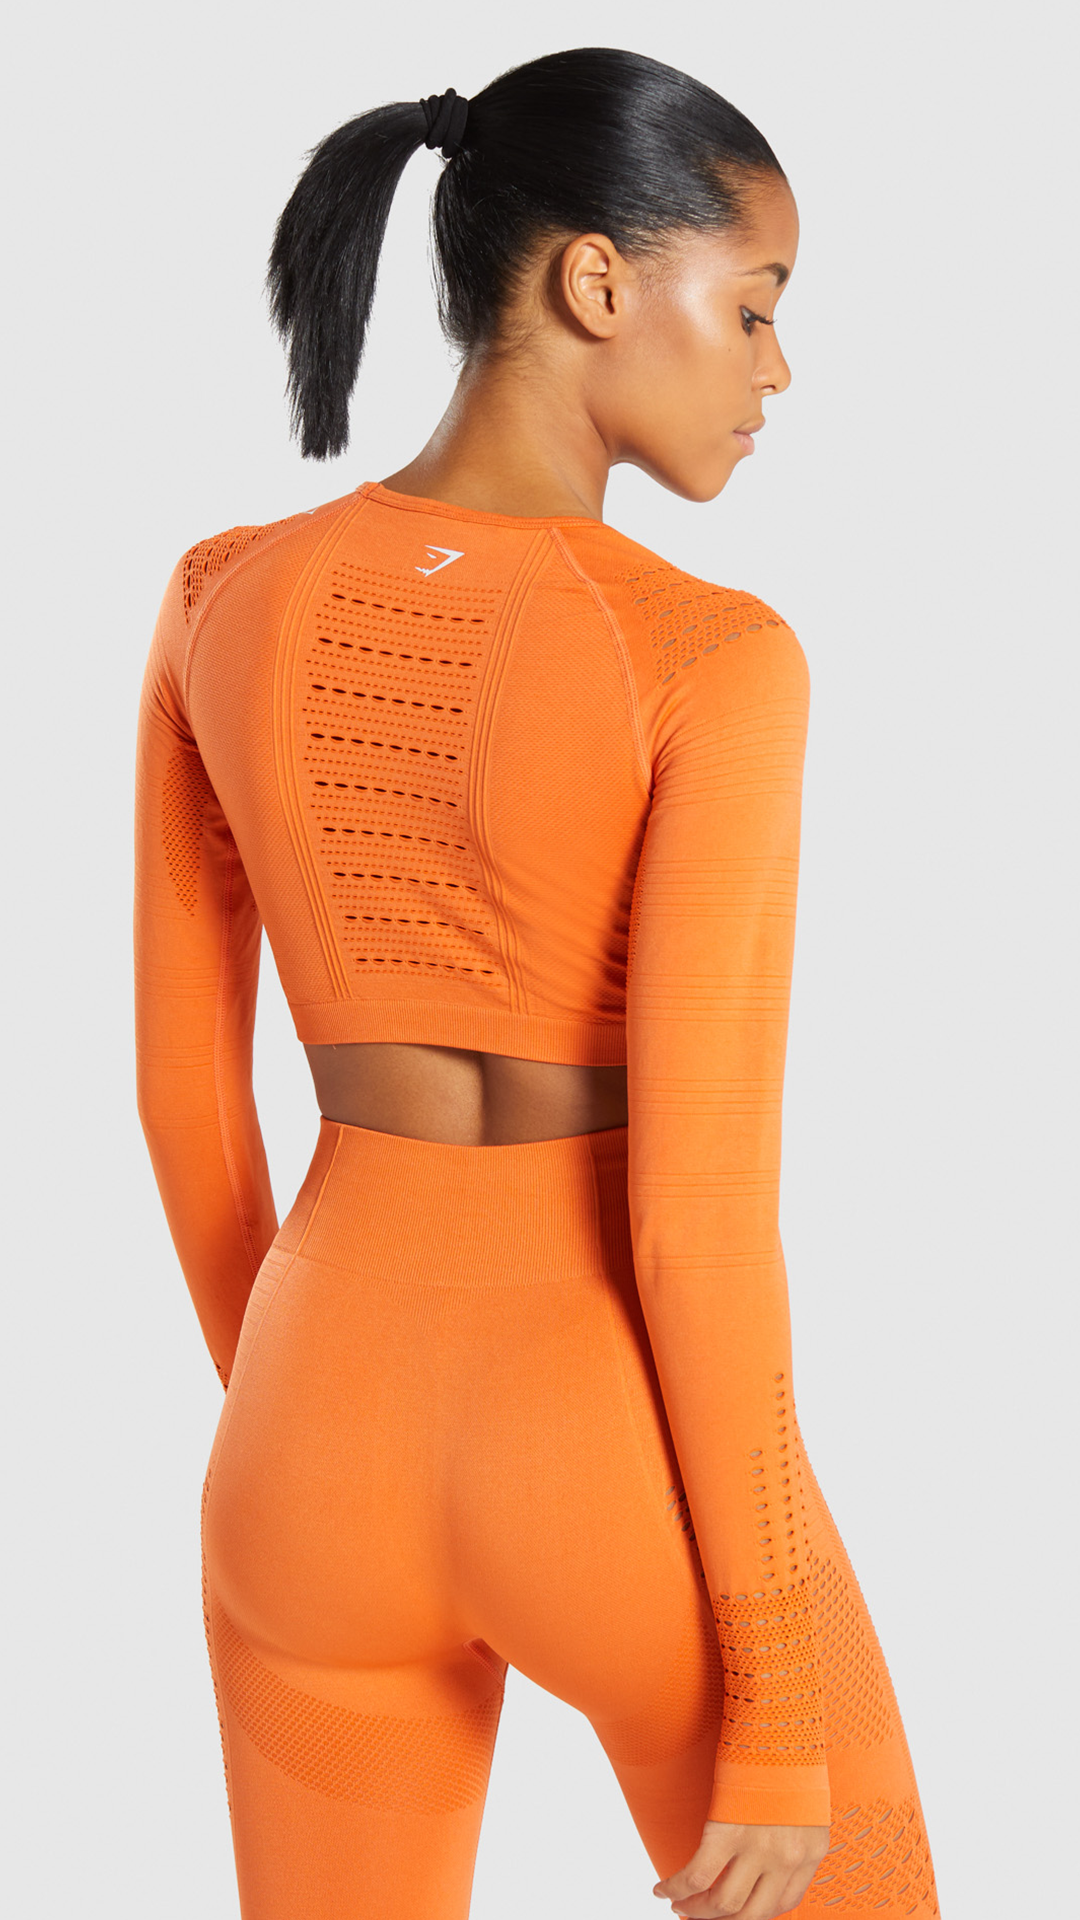 32222c0db7e1f The Flawless Knit Long Sleeve Crop Top, Burnt Orange. Settle for nothing  less than Flawless. A fitted design with midriff crop, eyelet and rib  patterns and ...